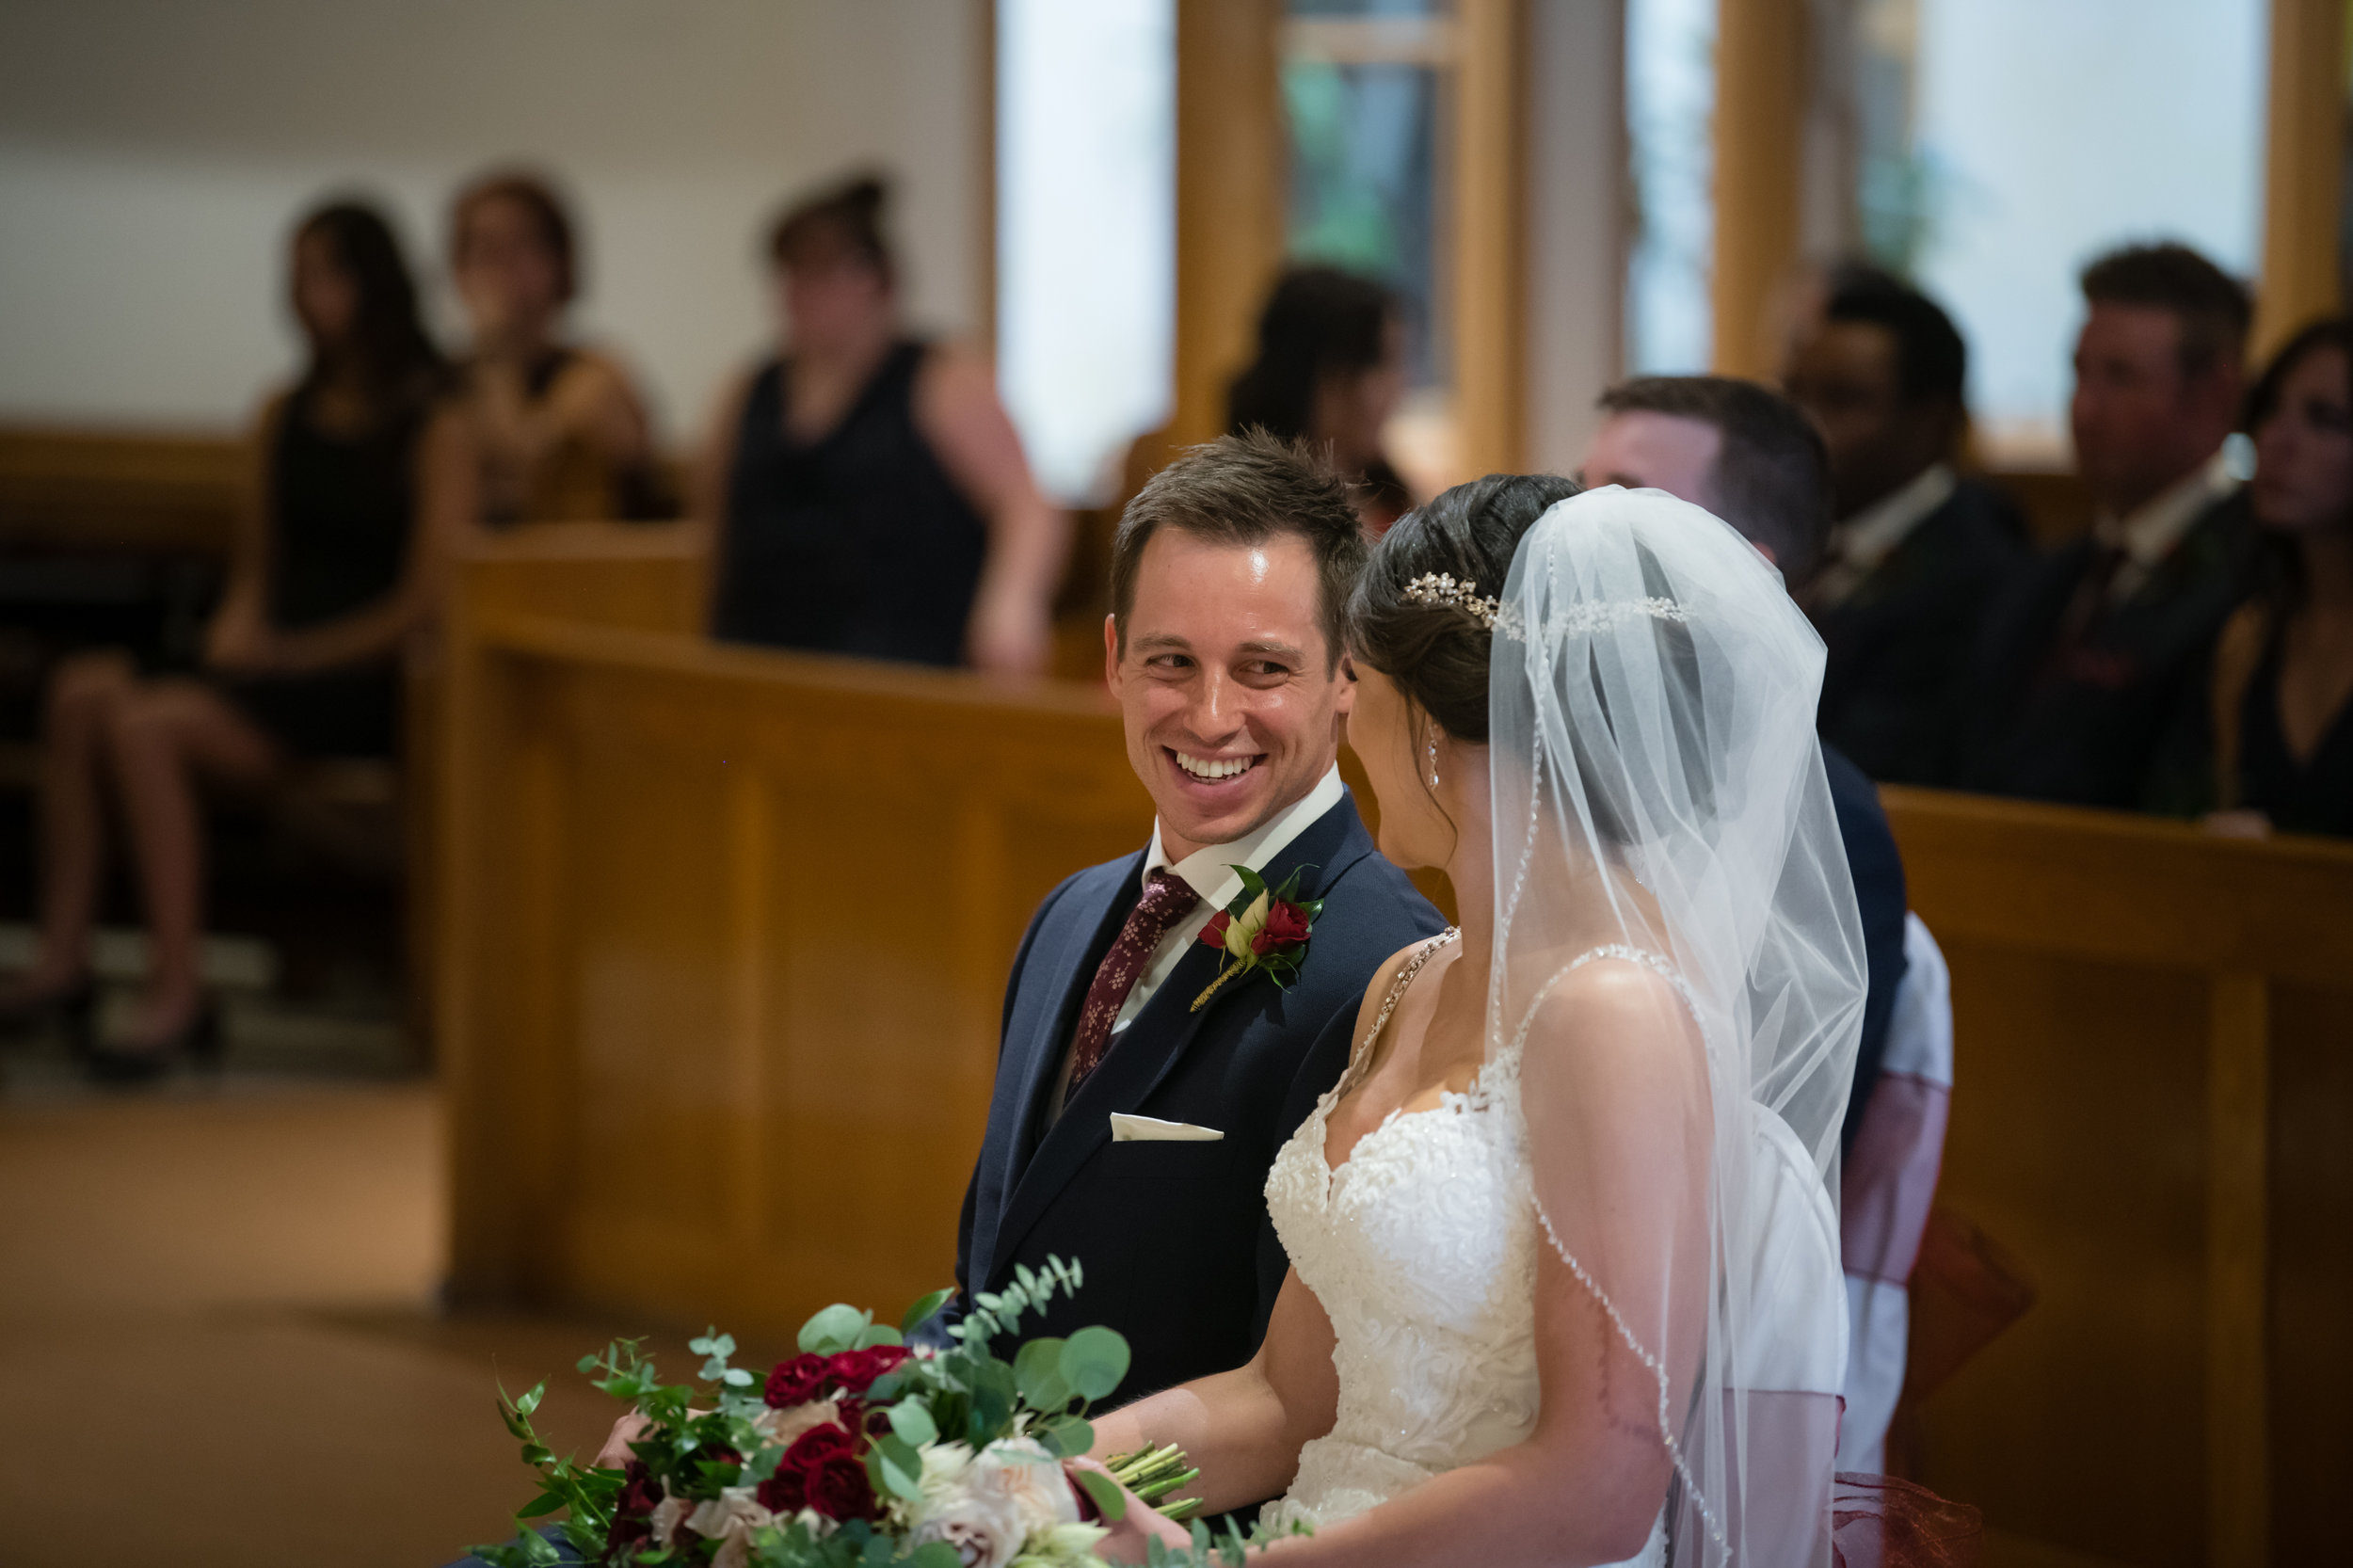 Laura_Danny_Wedding_Sneak_Peek_029.jpg